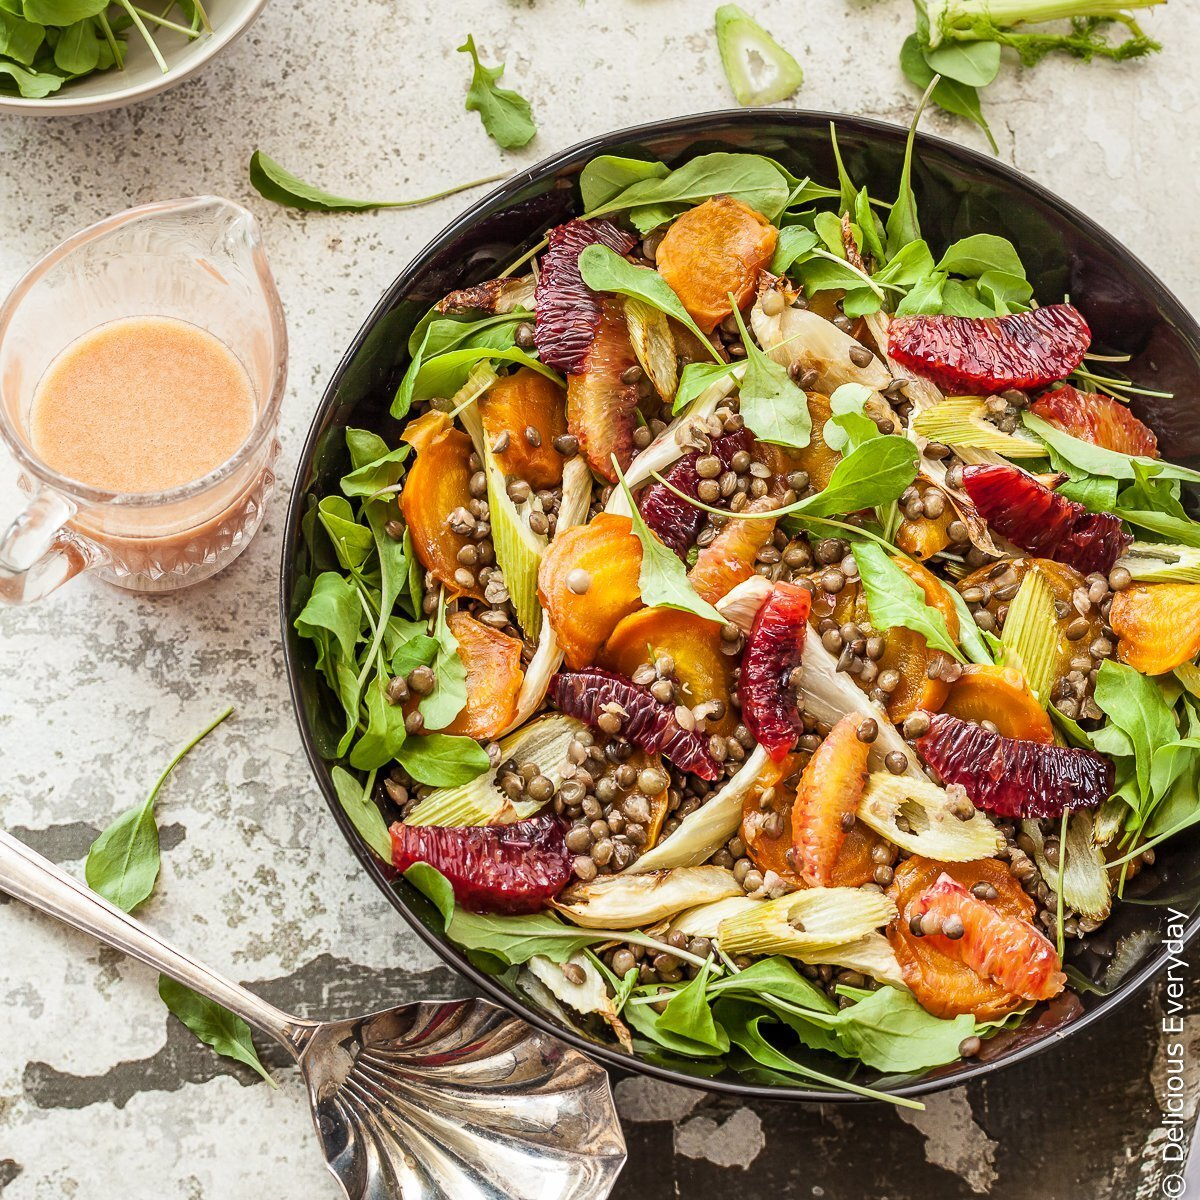 Roast Beetroot Salad with Lentils, Fennel and Blood Orange in a Blood Orange Dressing